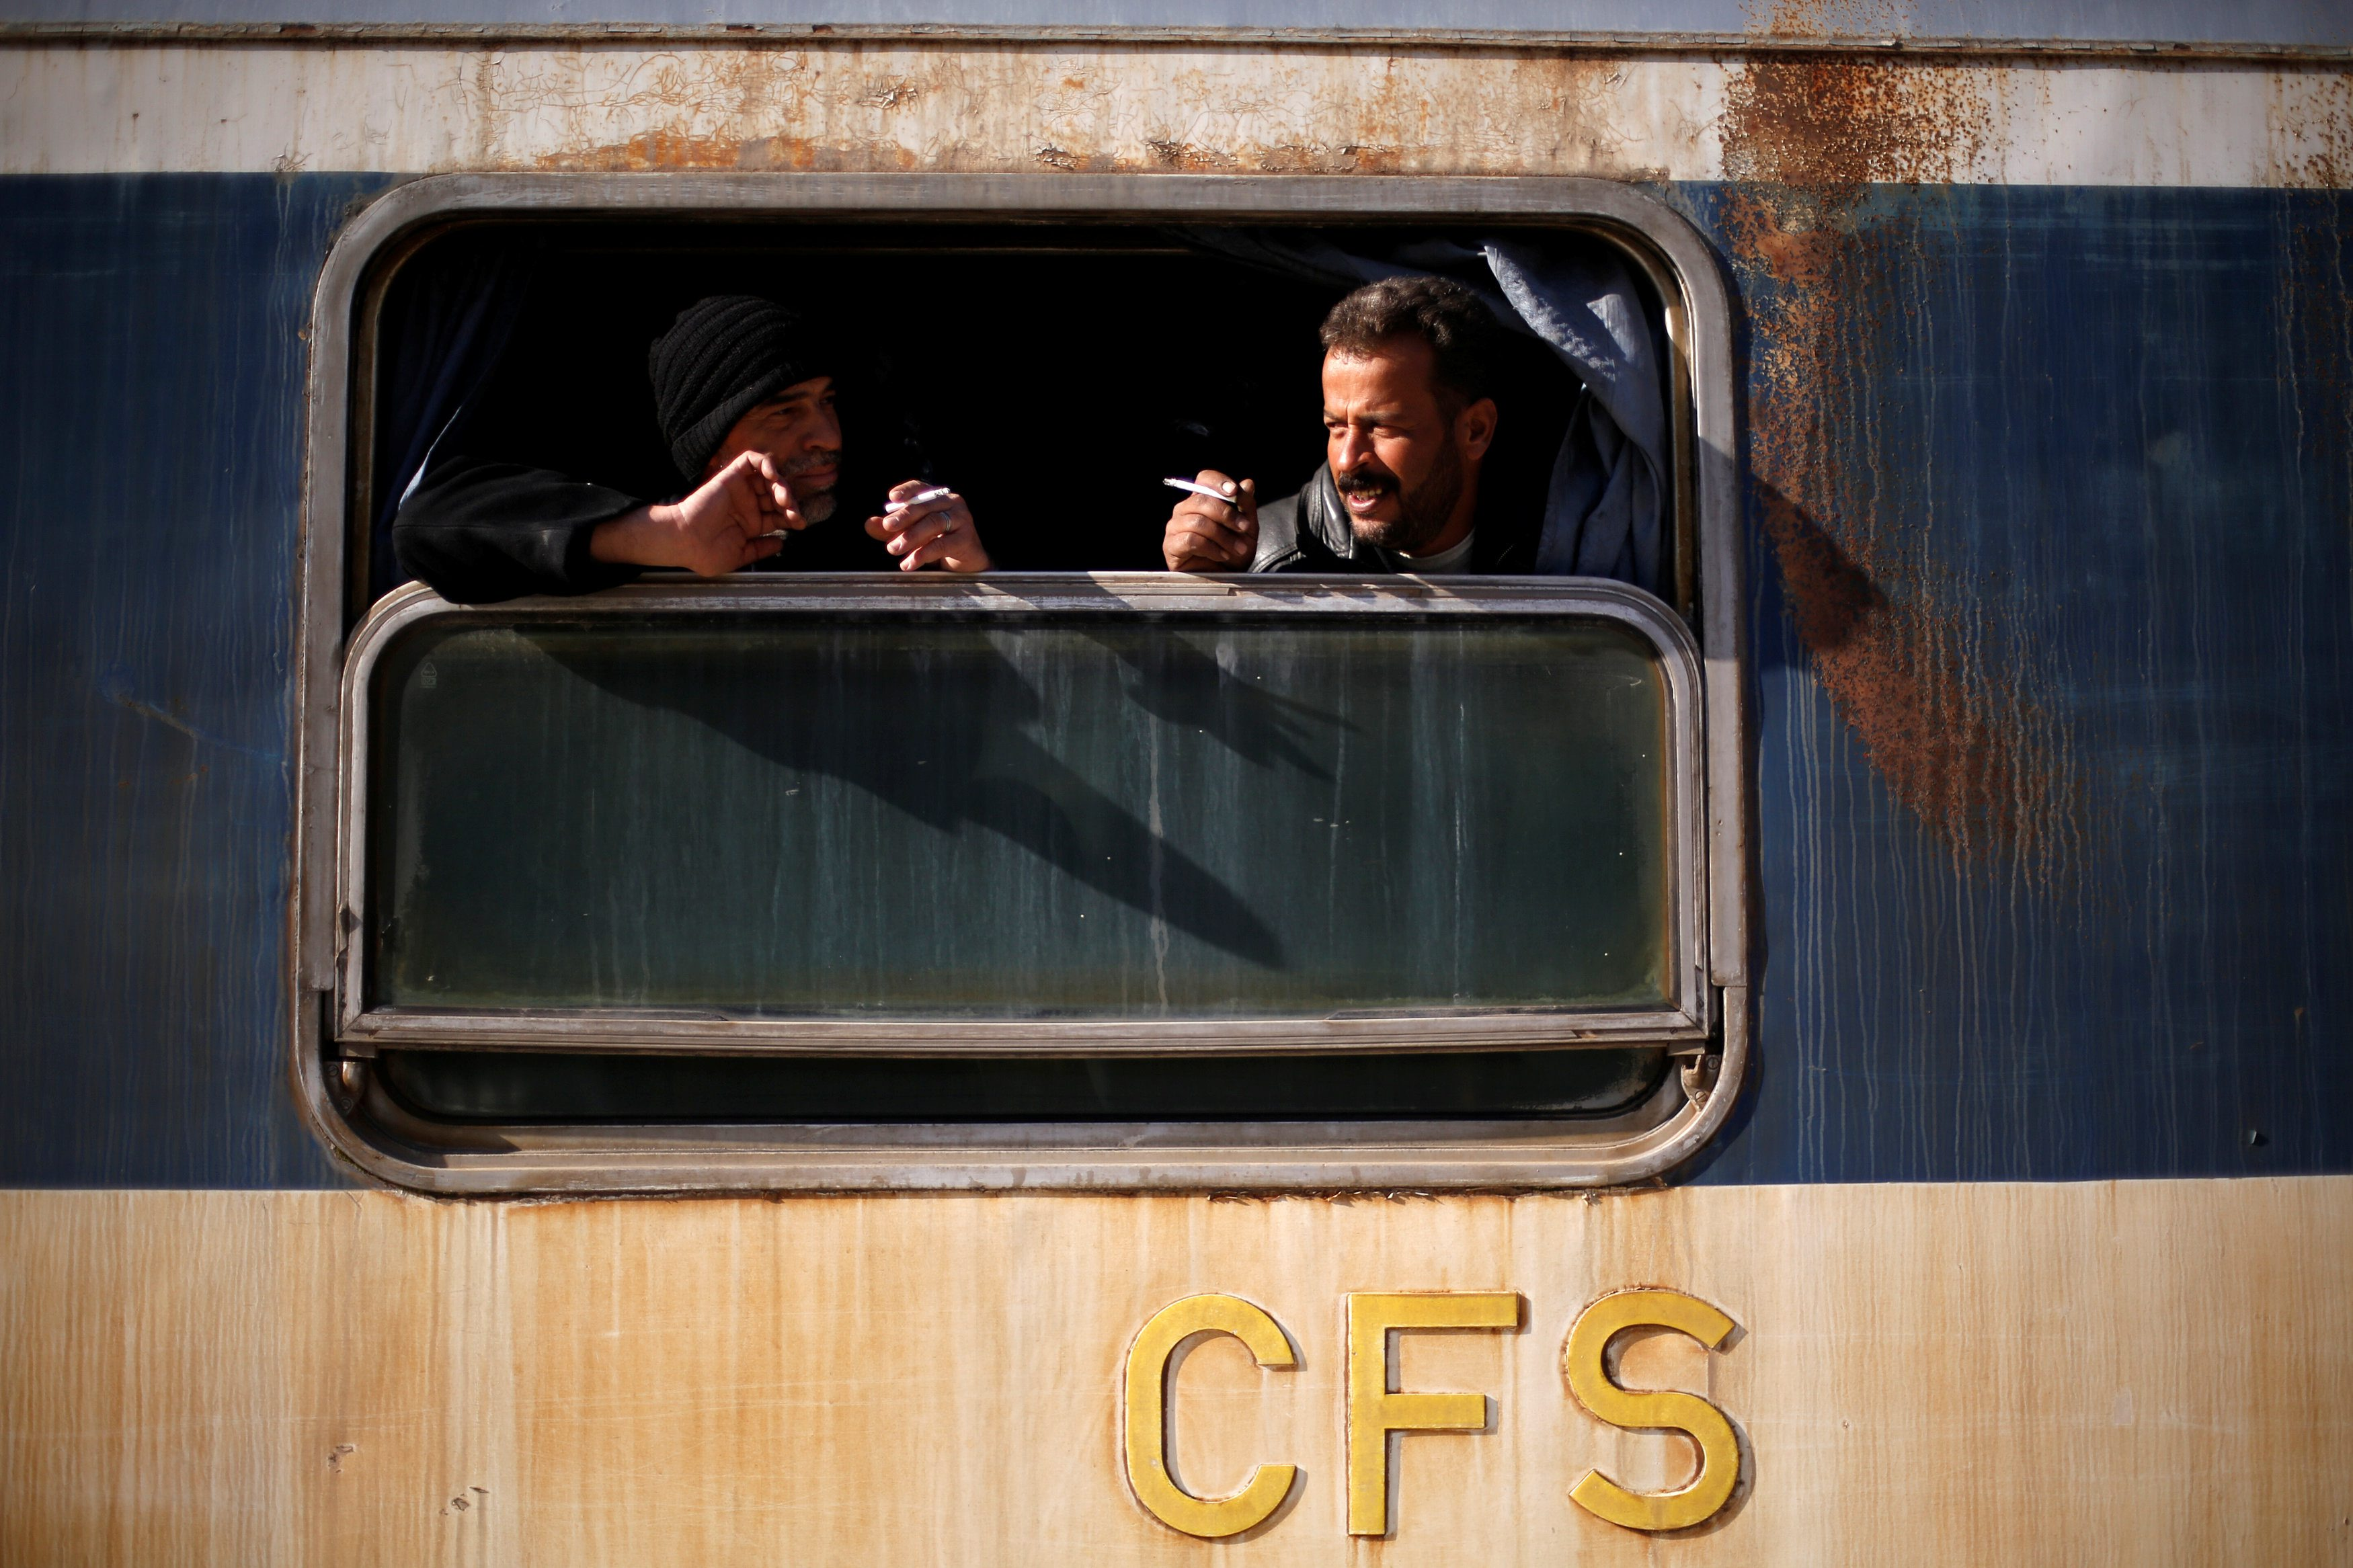 People ride a train at Baghdad Station in west Aleppo, Syria February 1, 2017. Picture taken February 1, 2017. REUTERS/Omar Sanadiki